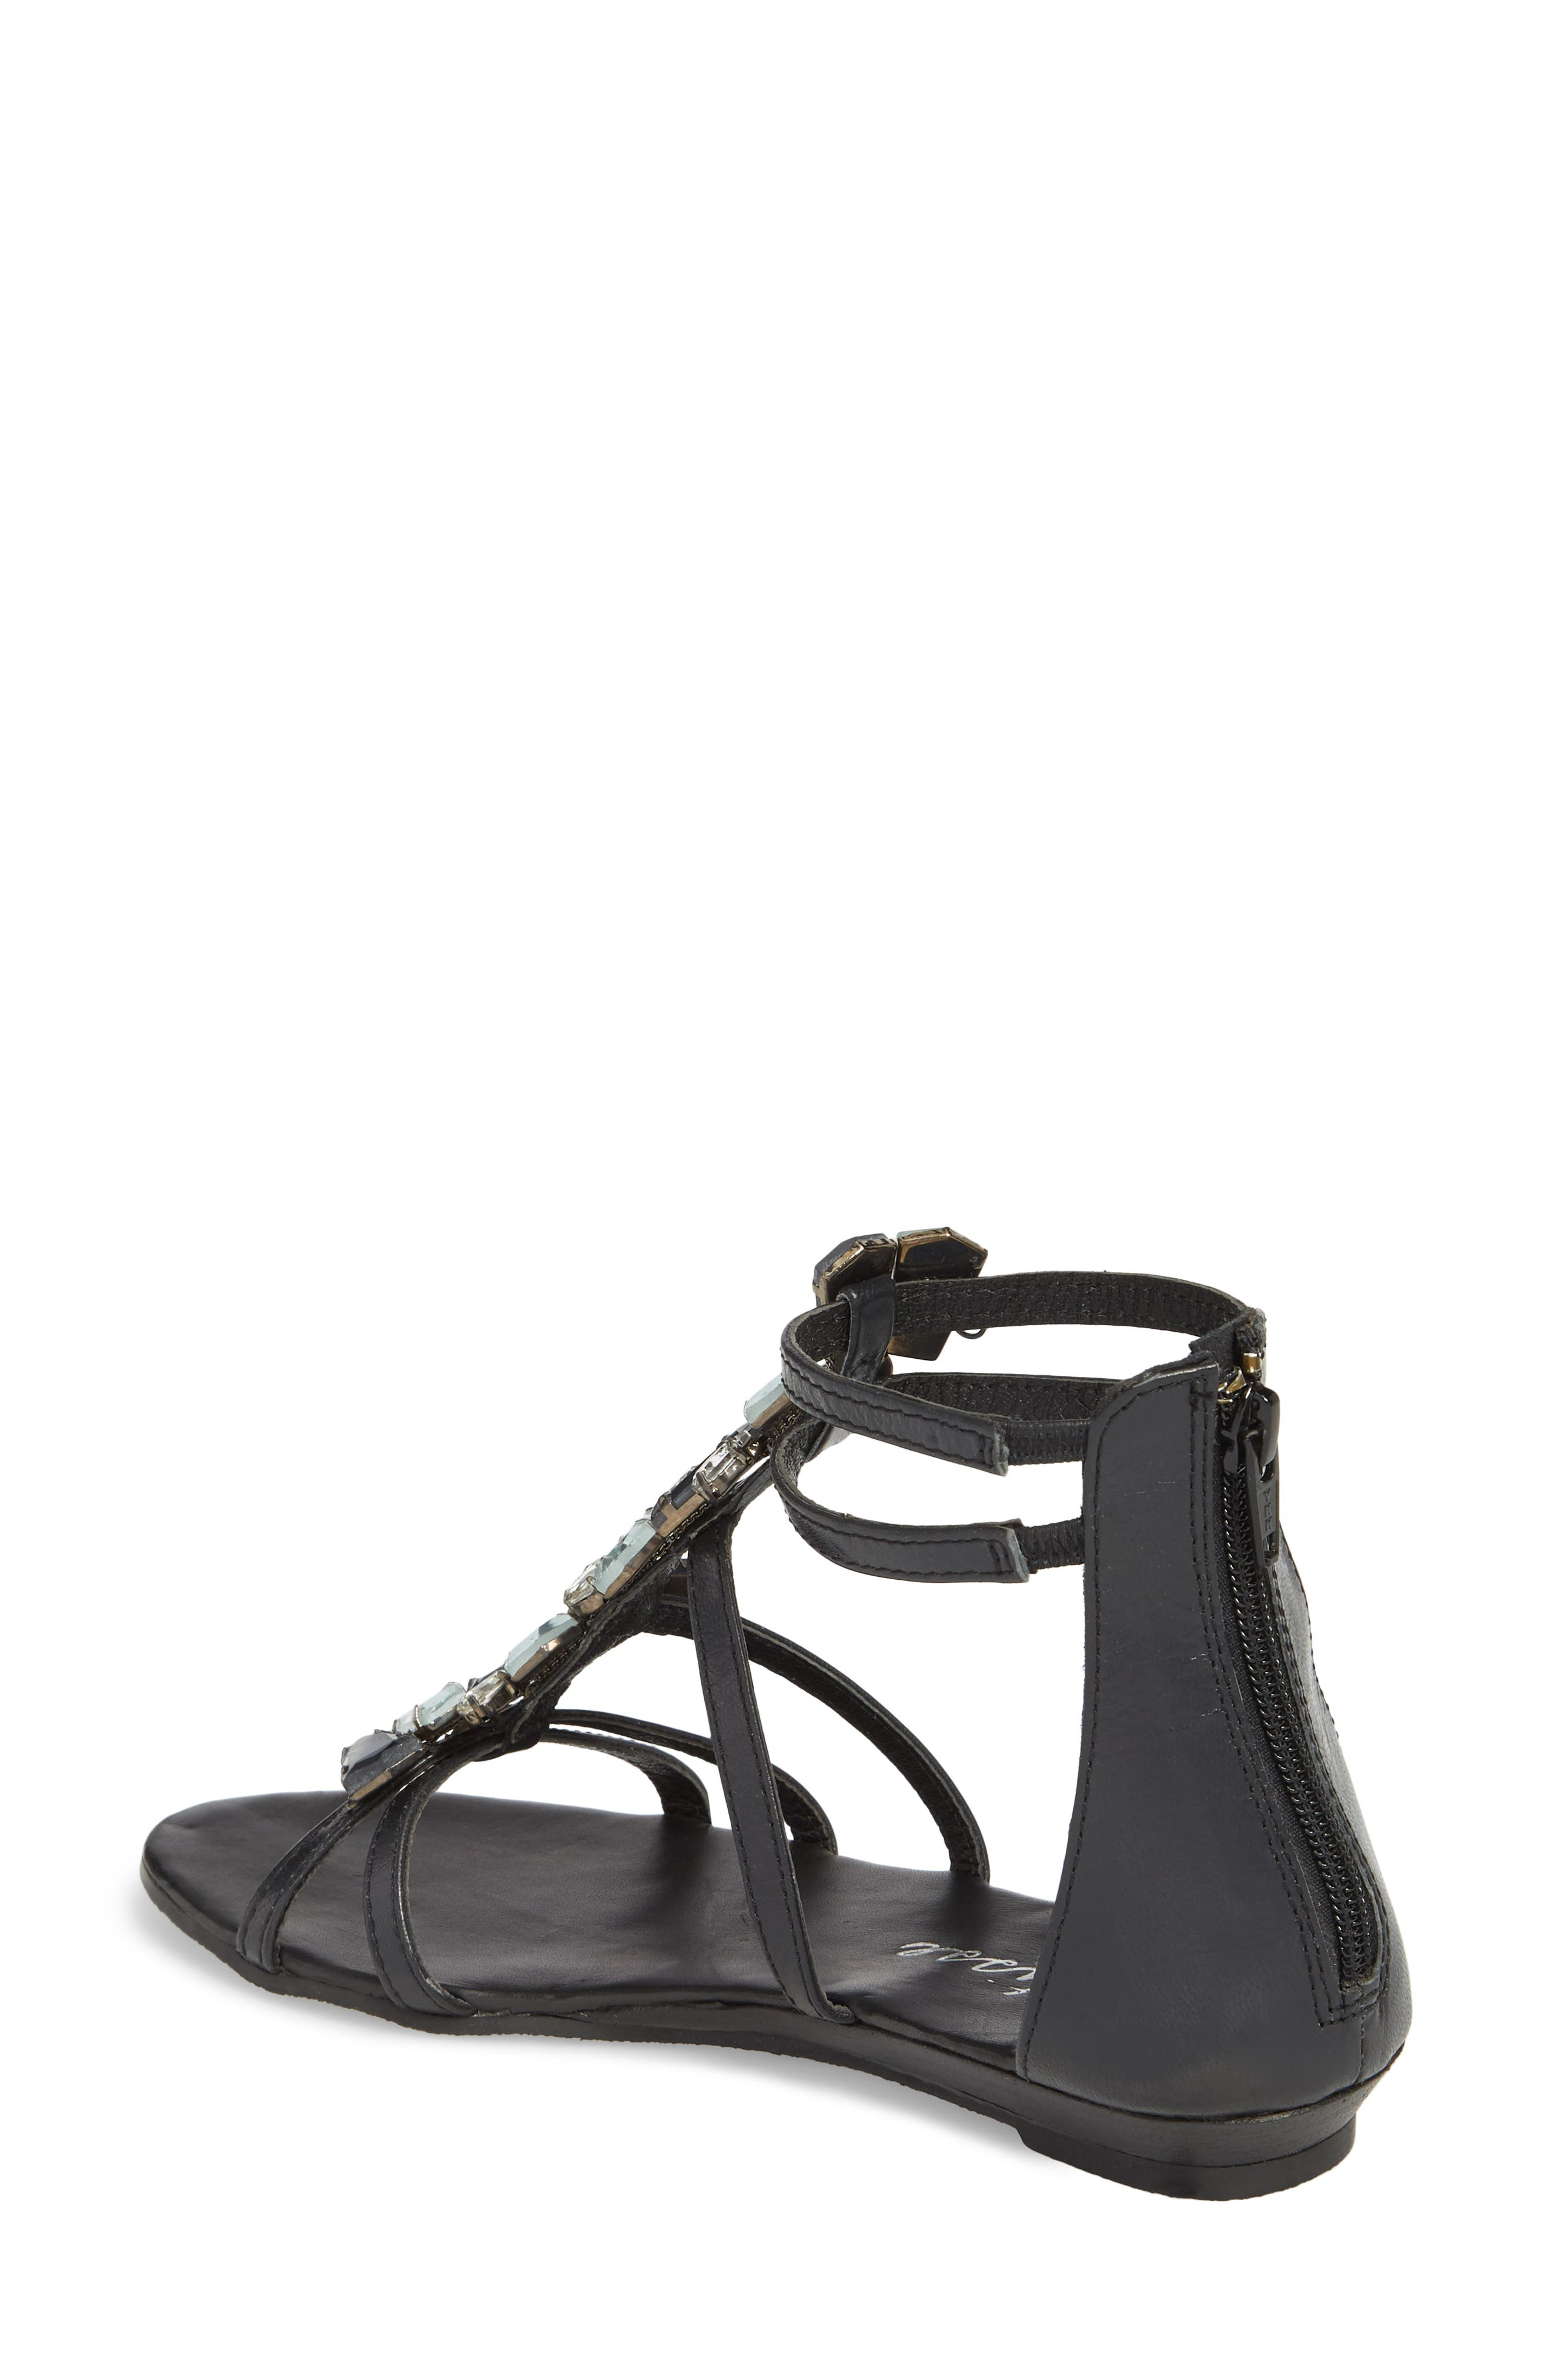 Didi Crystal Embellished Sandal,                             Alternate thumbnail 2, color,                             Black Leather